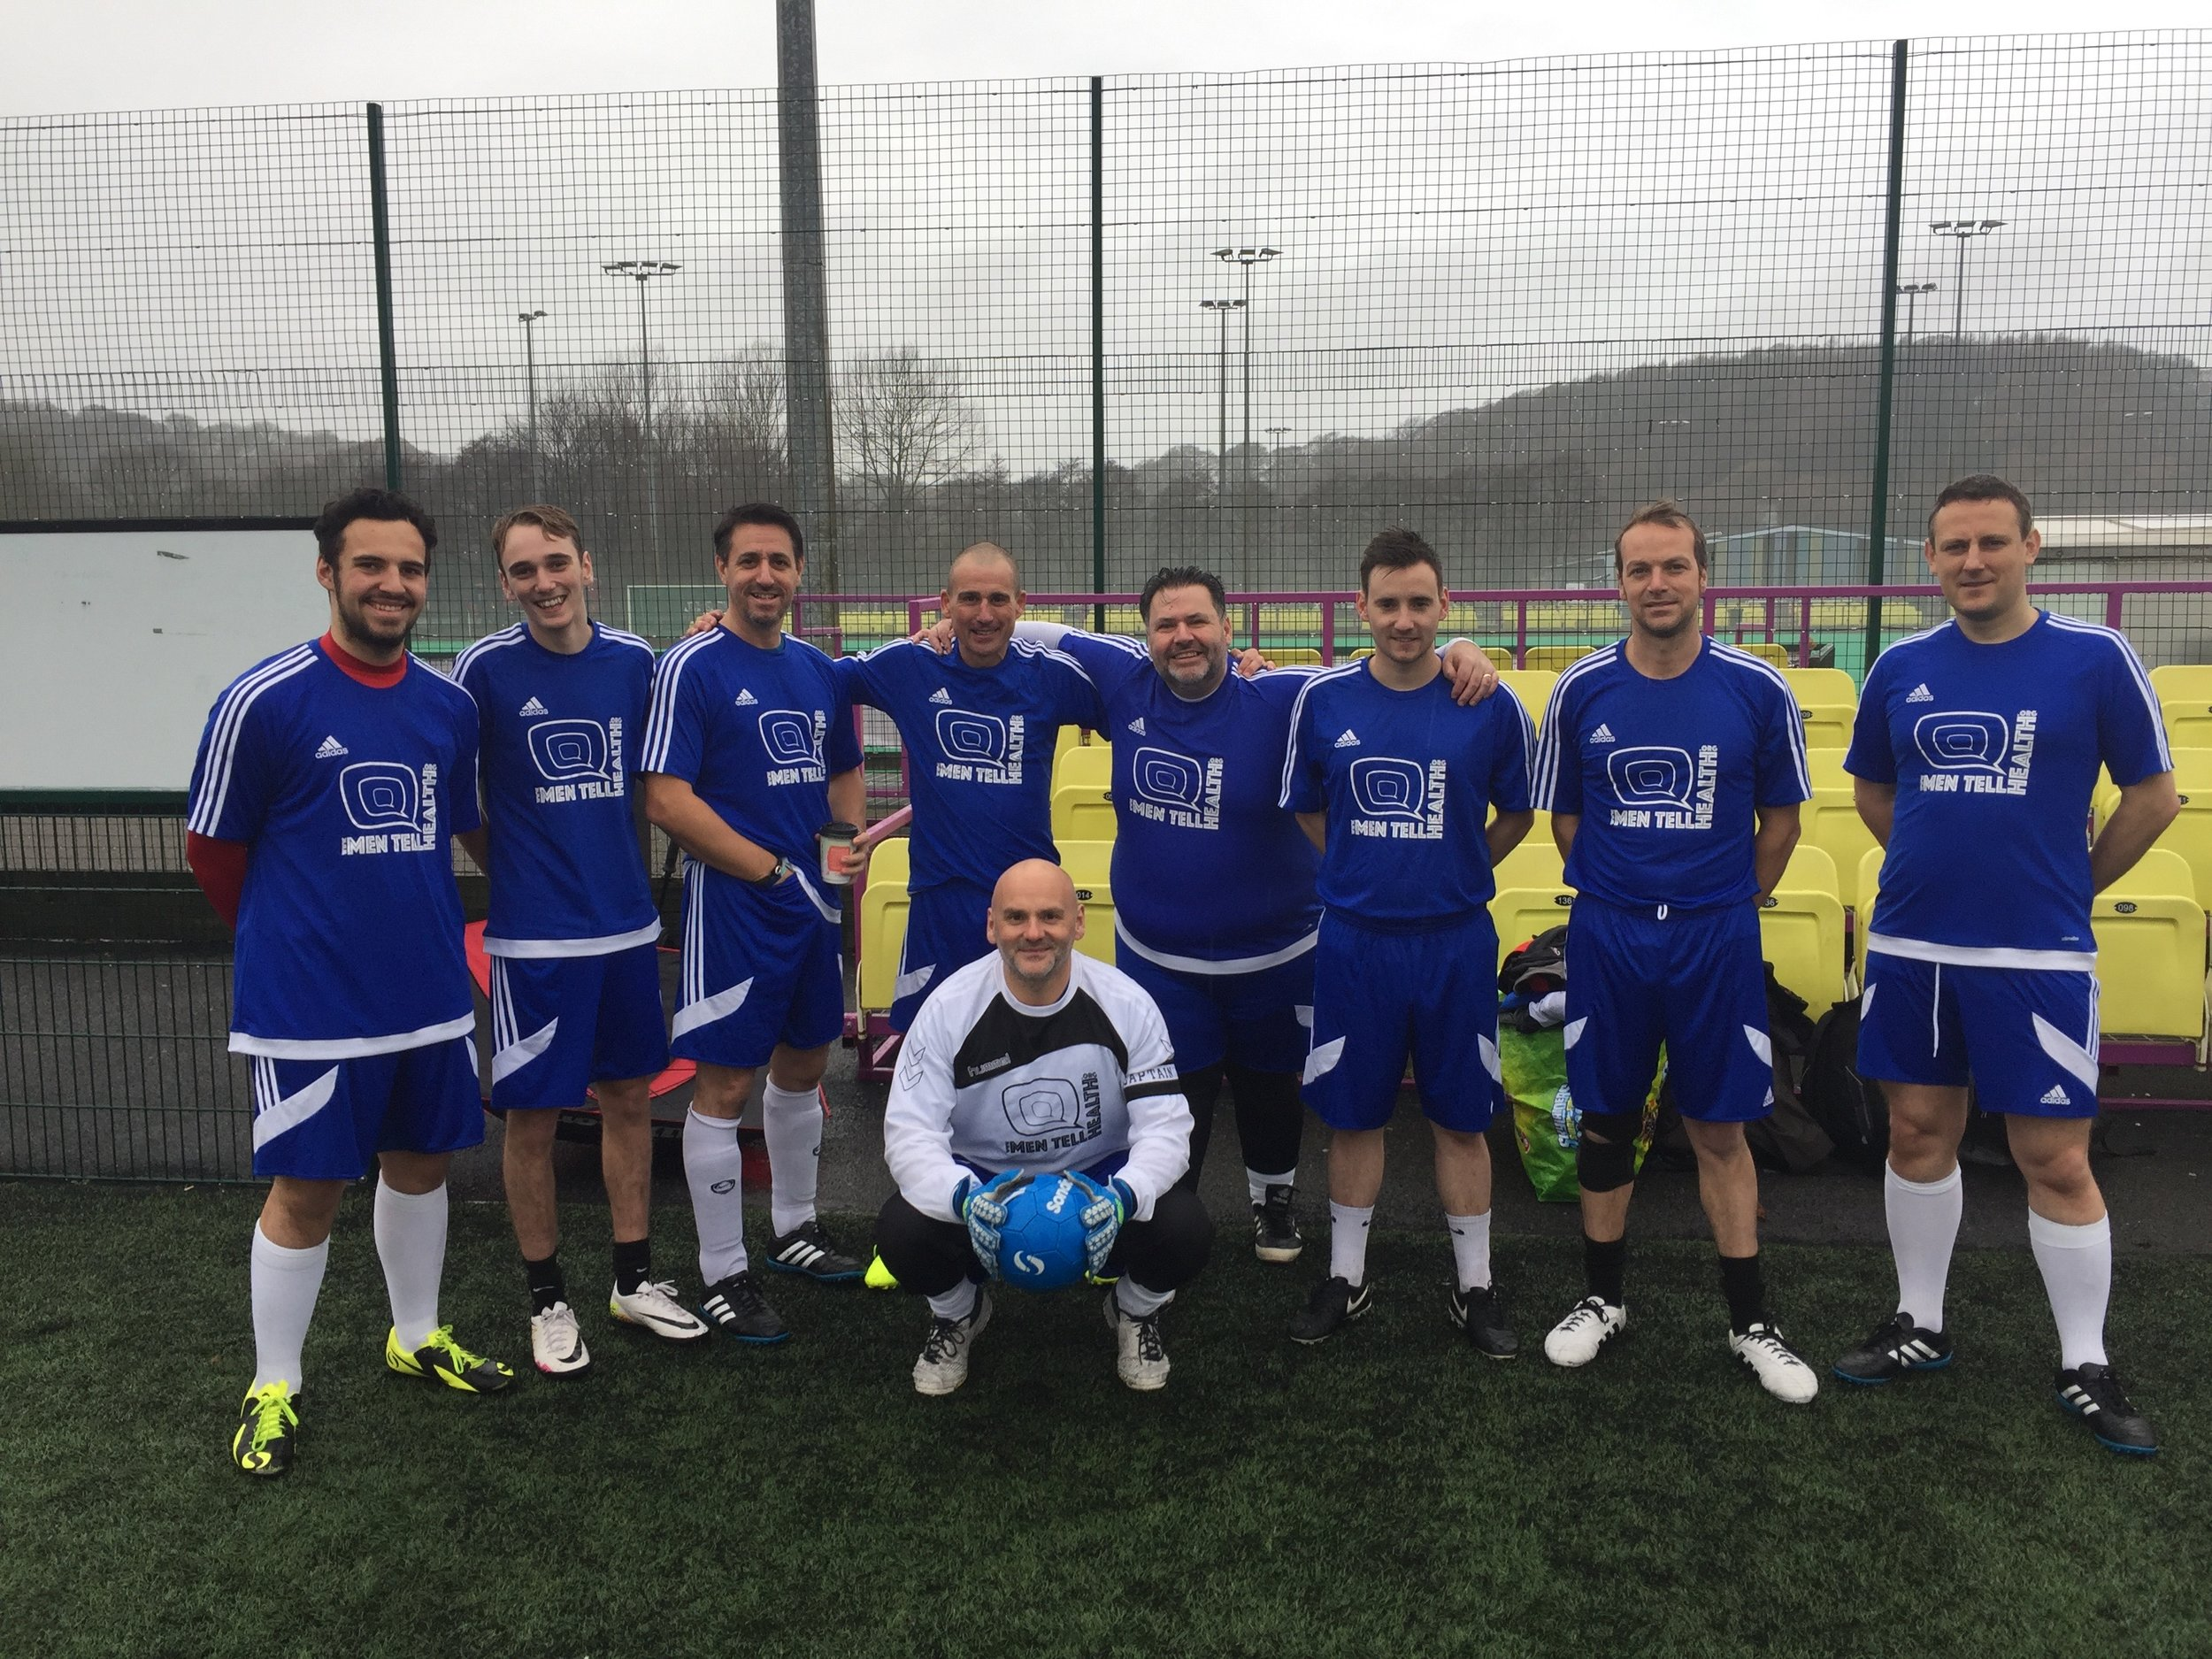 The largest squad ever assembled... I mean in numbers, not girth ;-) L-R James  'Cesc Fabregas' Doppelgänger' Skinner, Callum  'I'm Too Good To Wear the Official Socks' Bendelow, Gavin  'Buster The Dog Sucks..but what's happening with your hand?'  Dawson, Peter  'Yellow Flash'  Burgess, Richard  'Just squatting, not having a poo' Bendelow, Gary  'Yes, he's wearing leggings'  Pollard, Liam  'Not That One, The Other One'  Bendelow, James  'New Dad'  Wolsey,Gareth  'Fig Roll'  Cooper.